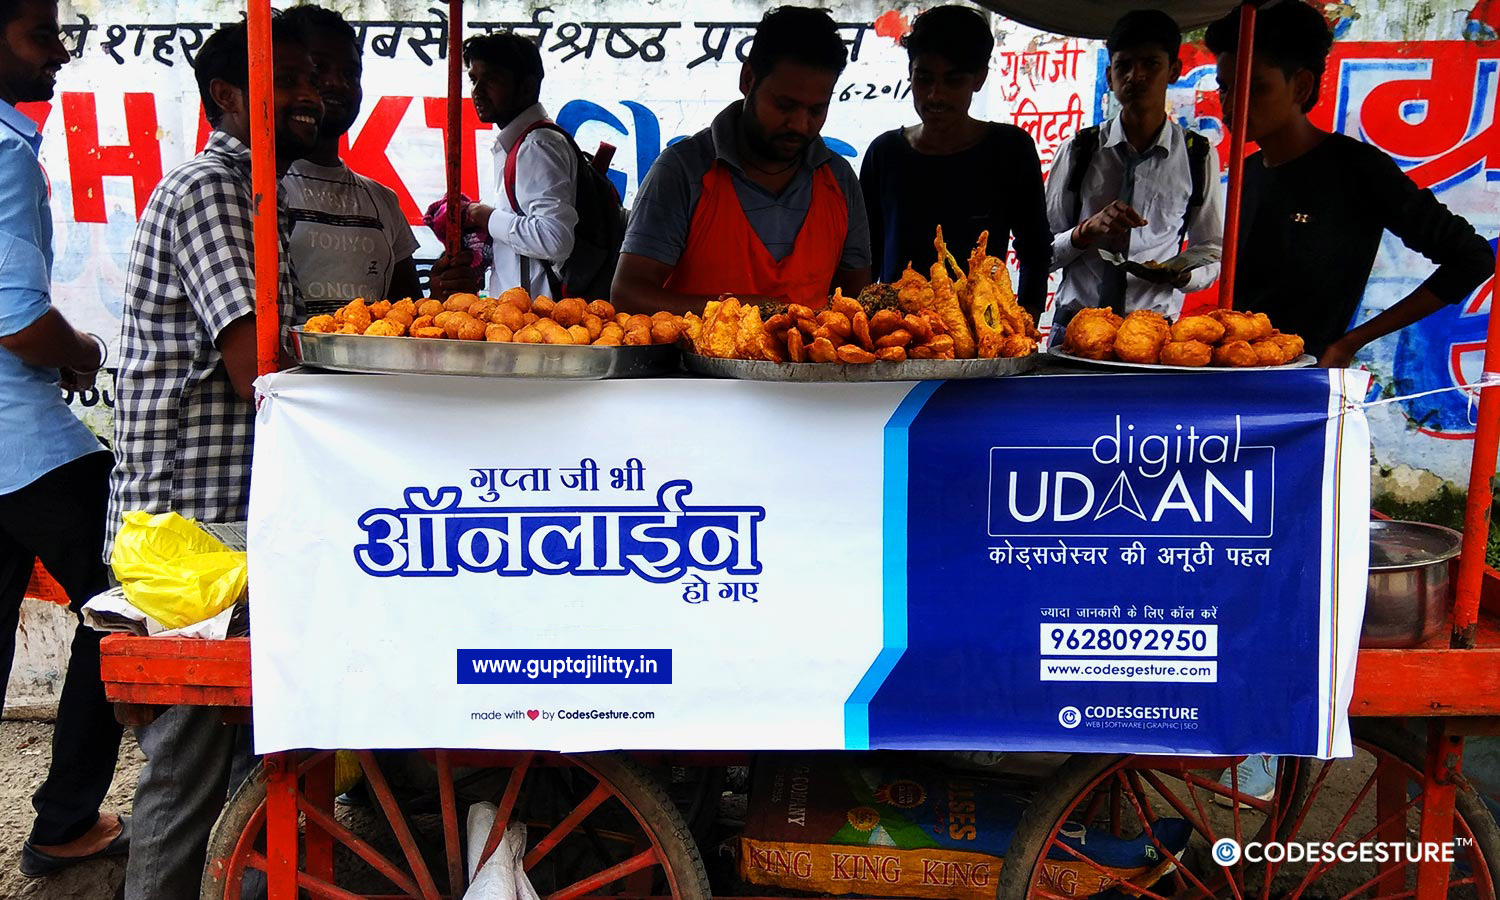 Digital Udaan is an initiative by CodesGesture.com to make Street Vendors capable to get the benefits of Information Technology.